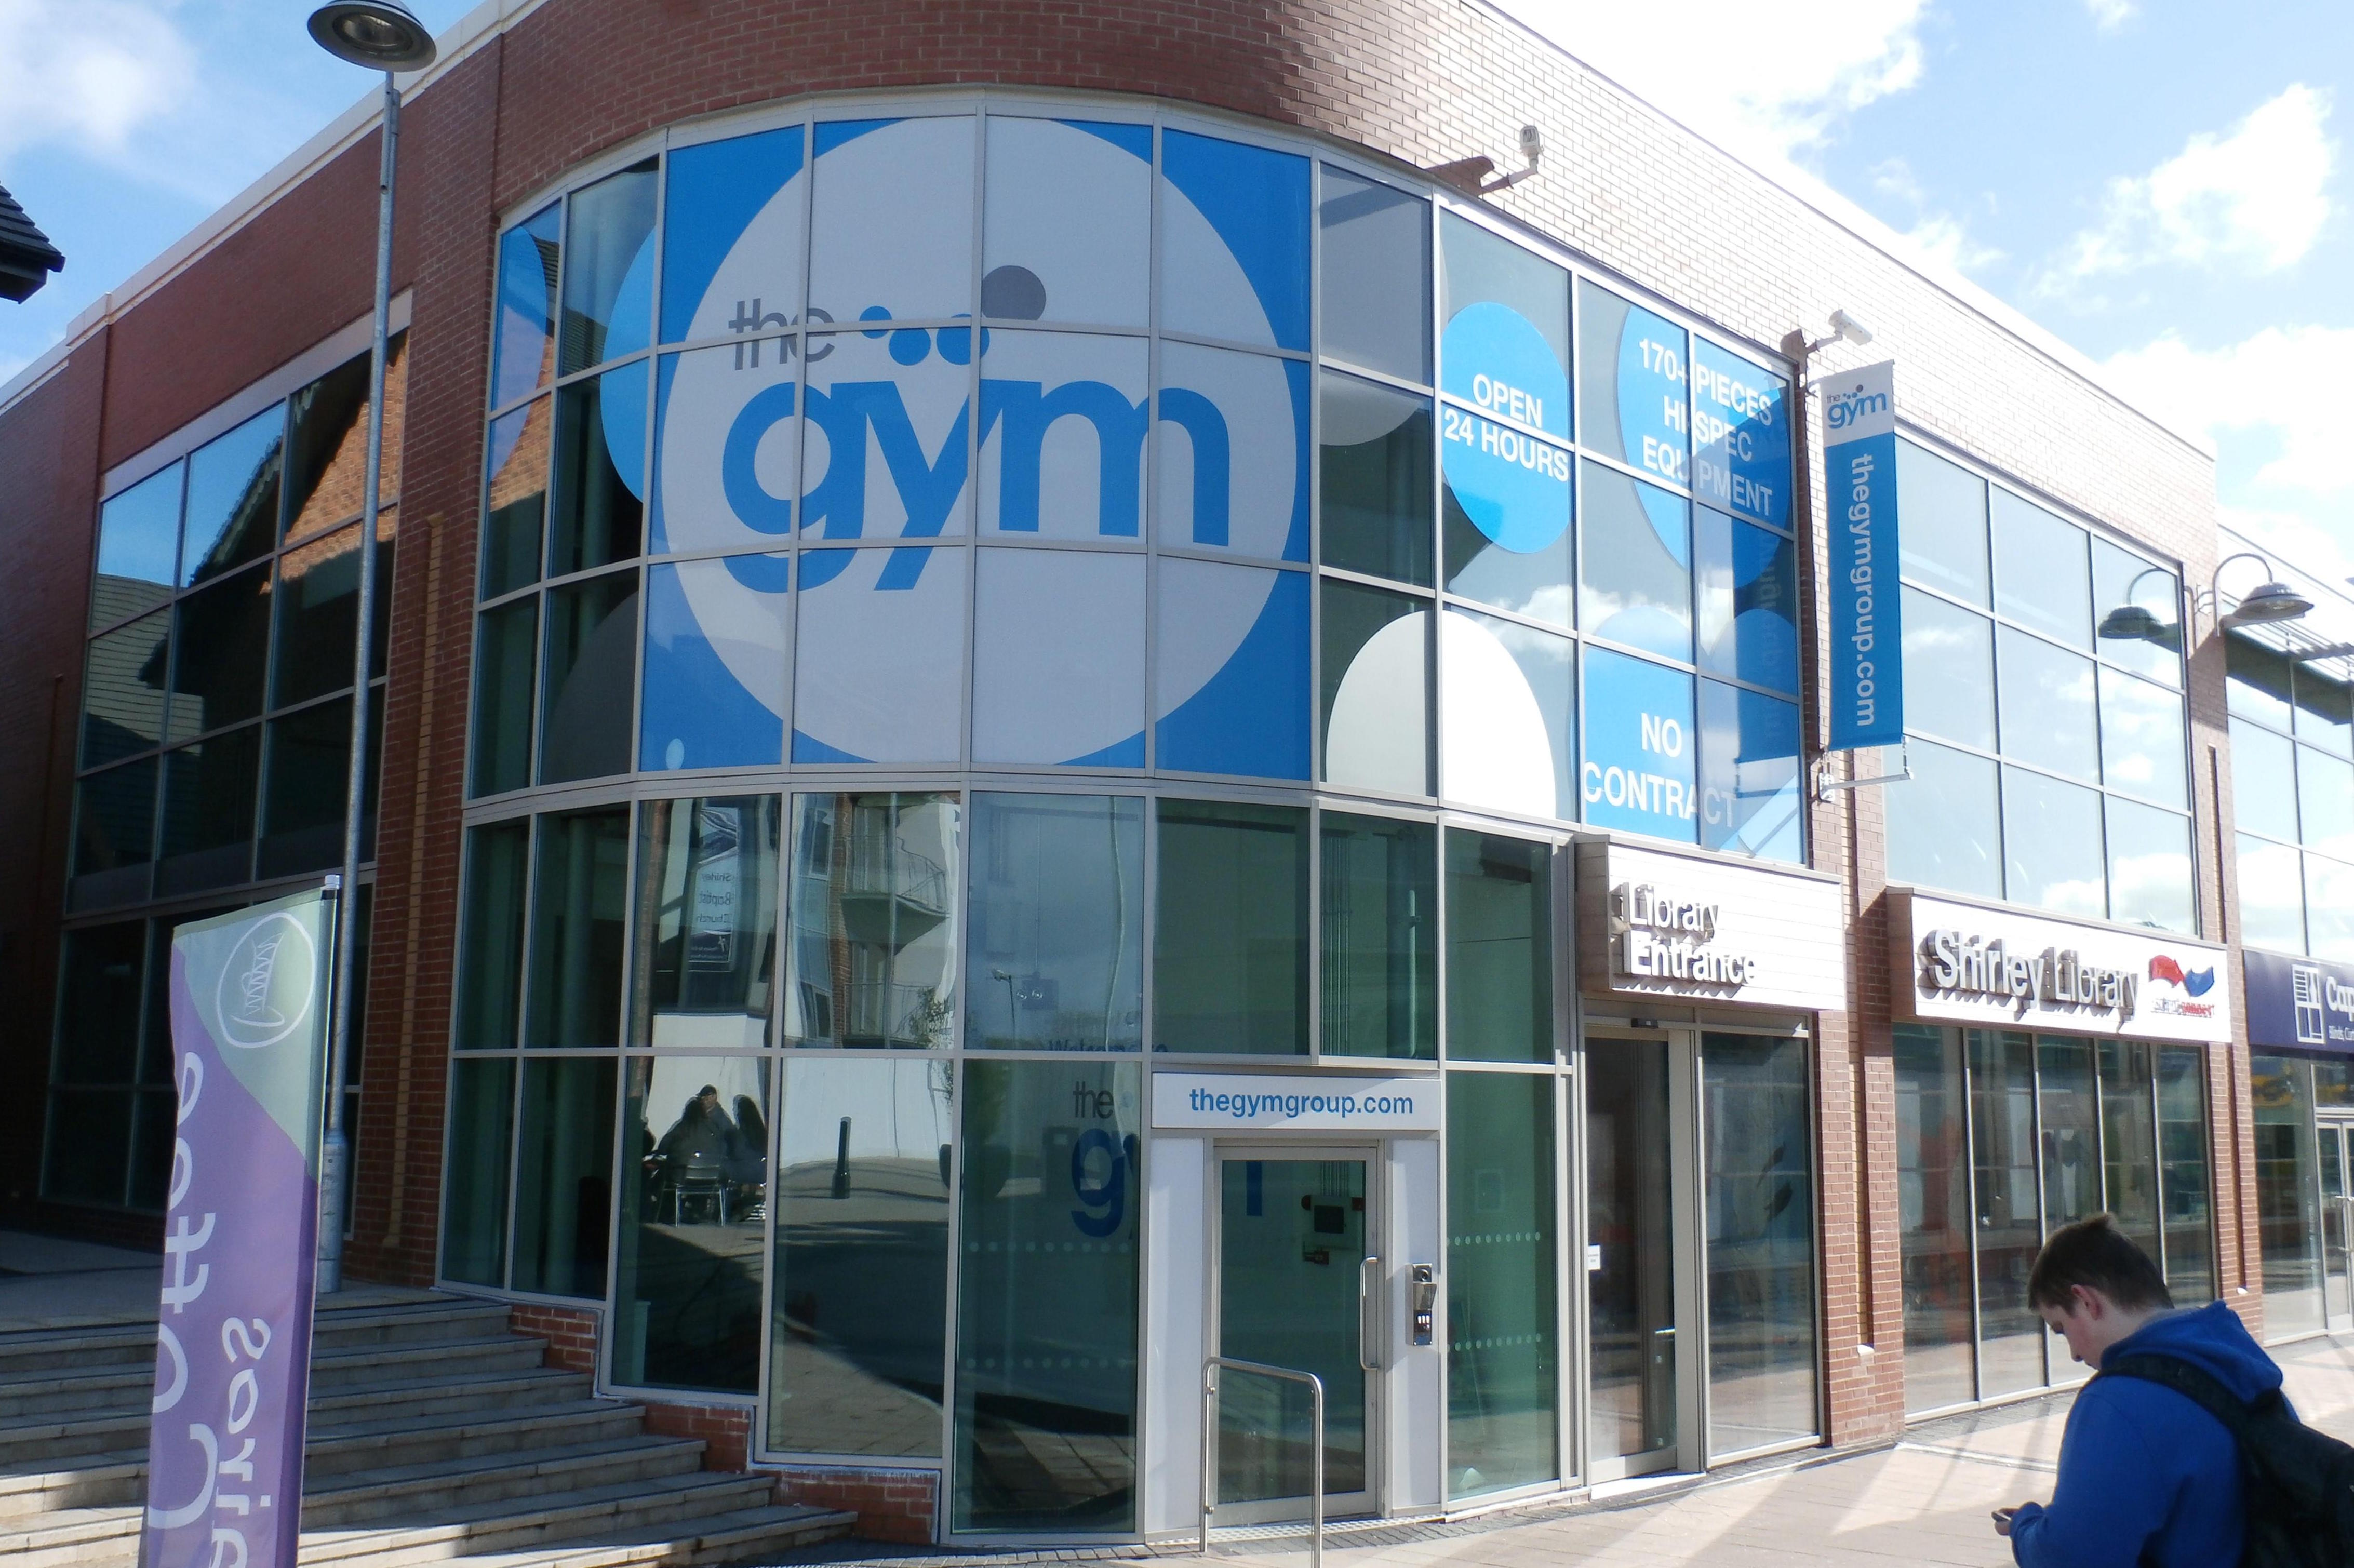 The Gym - Solihull.jpg